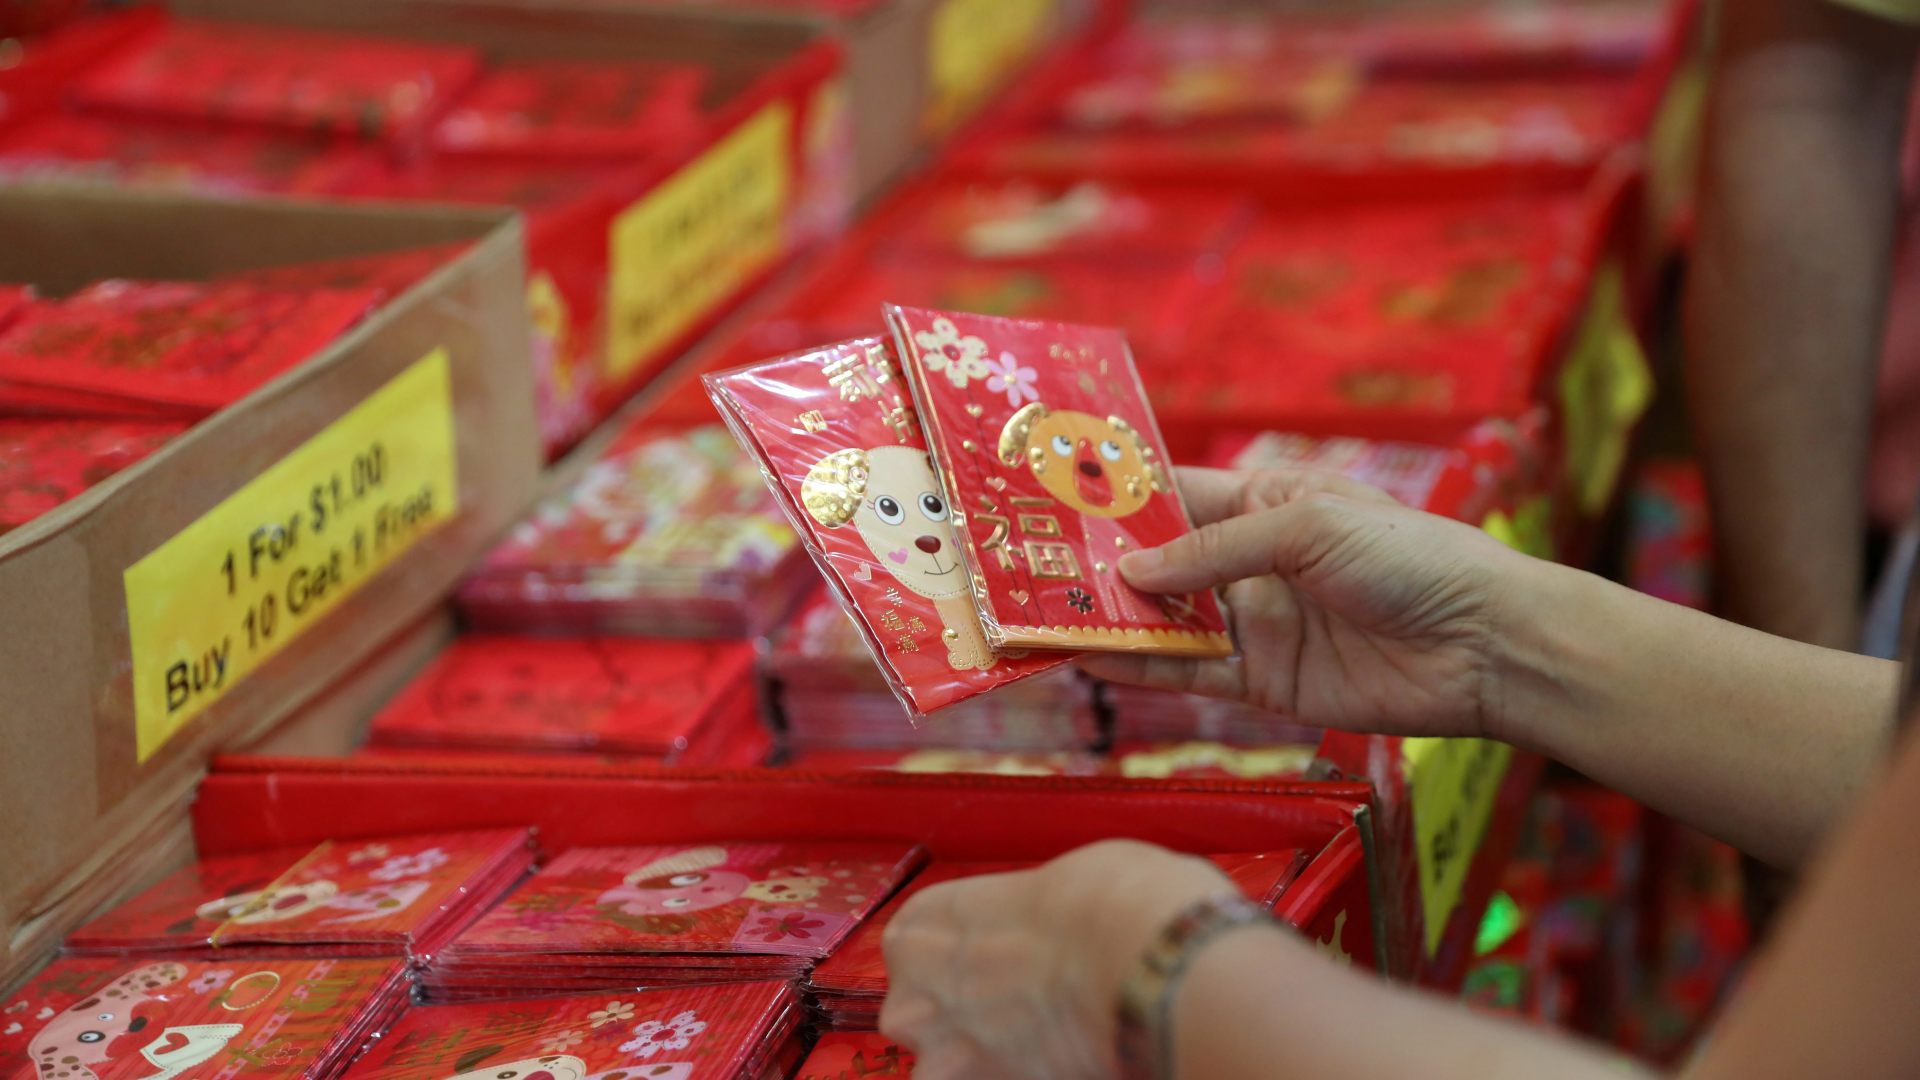 singapore promotes digital monetary gifts facilitating the gift giving tradition in the lunar new year